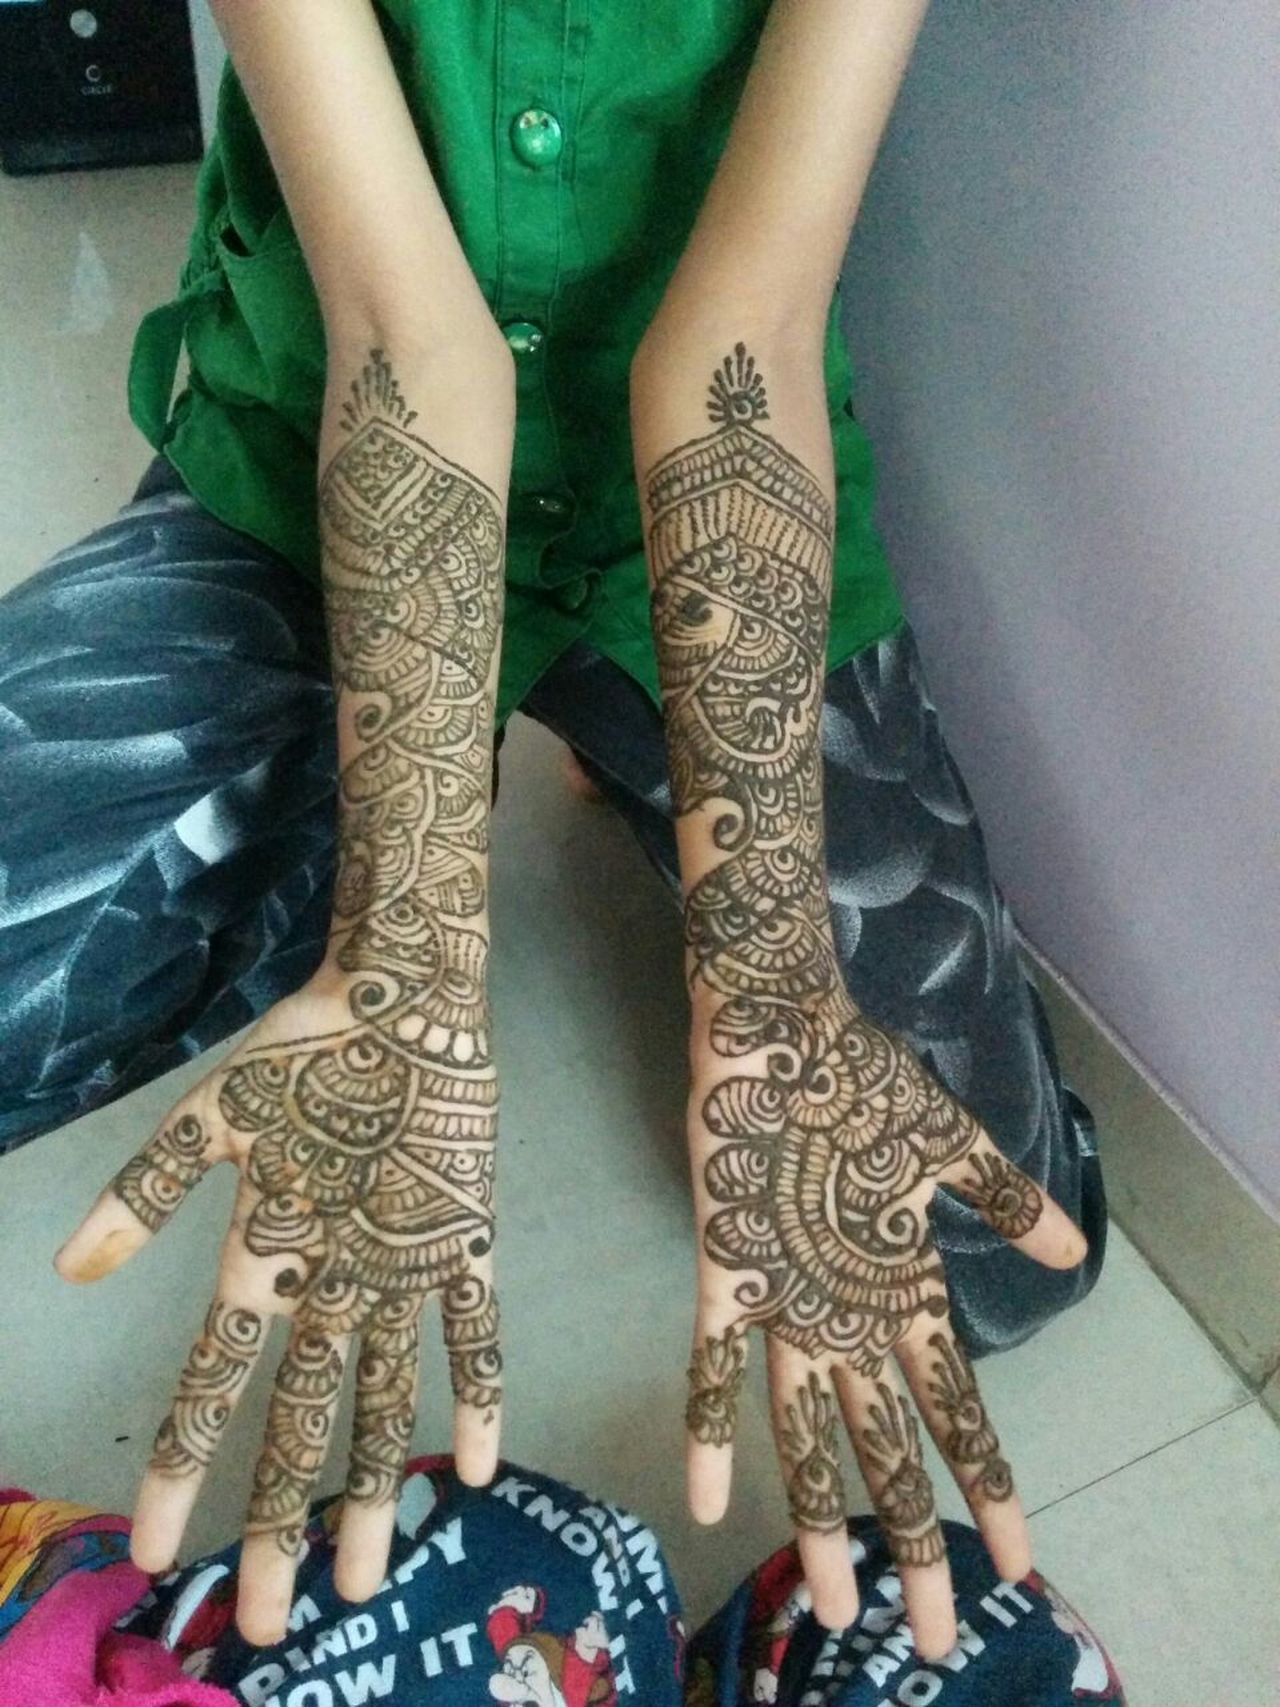 Henna Tattoo ❤ Henna Tattoo Design Close-up Human Body Part Art And Craft Creativity Human Hand Art High Angle View Midsection Parasngupta_photography